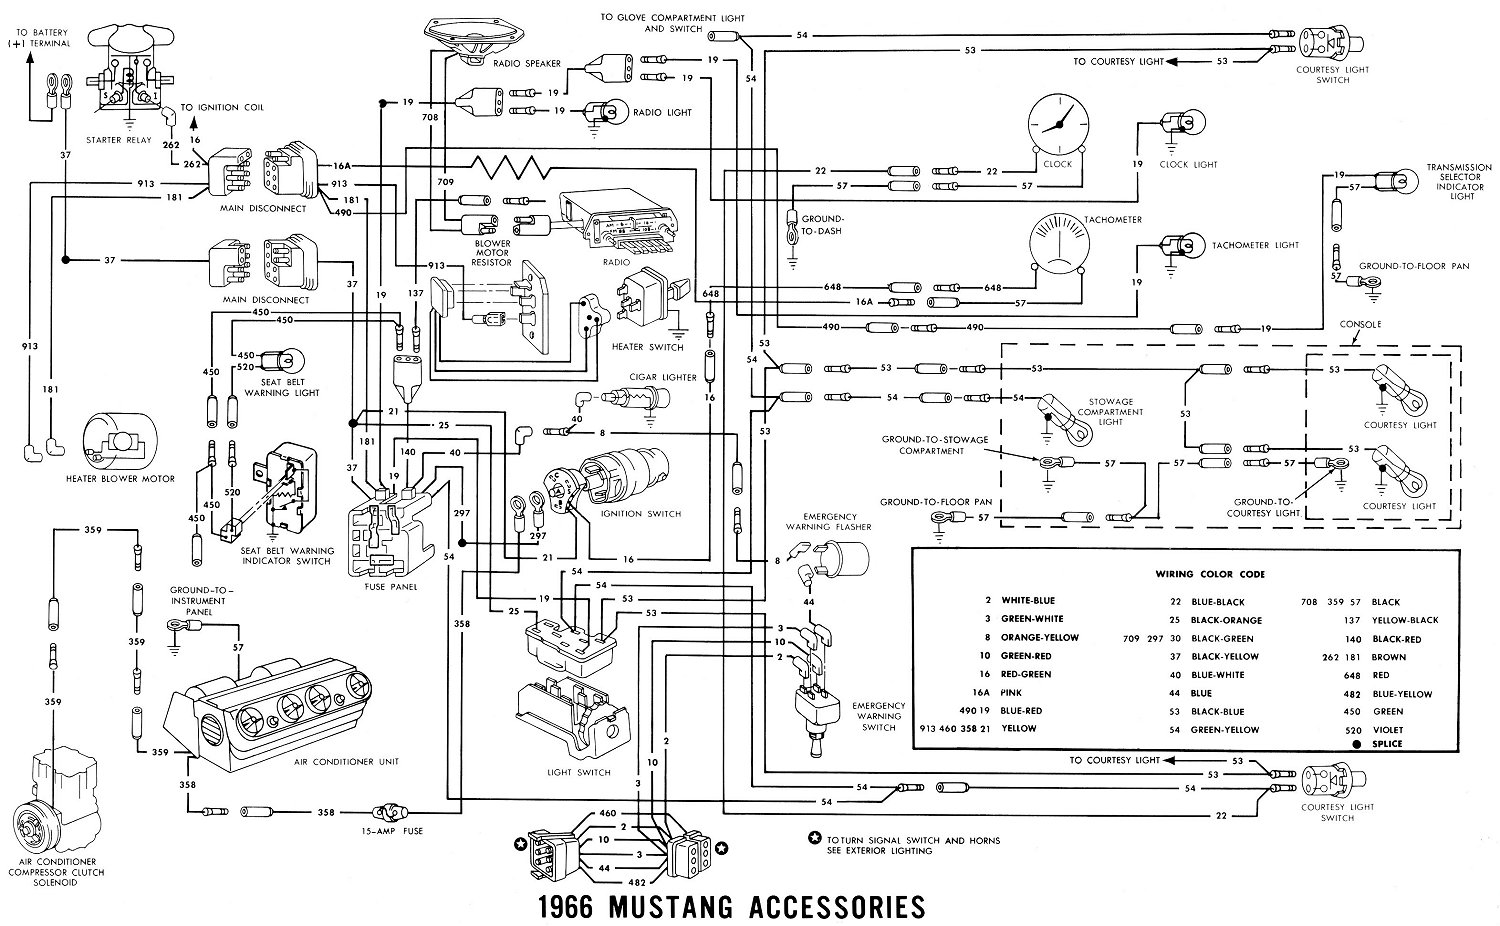 hight resolution of 1971 mustang dash wiring diagram wiring diagrams cougar wiring diagram 73 mustang dash wiring diagram